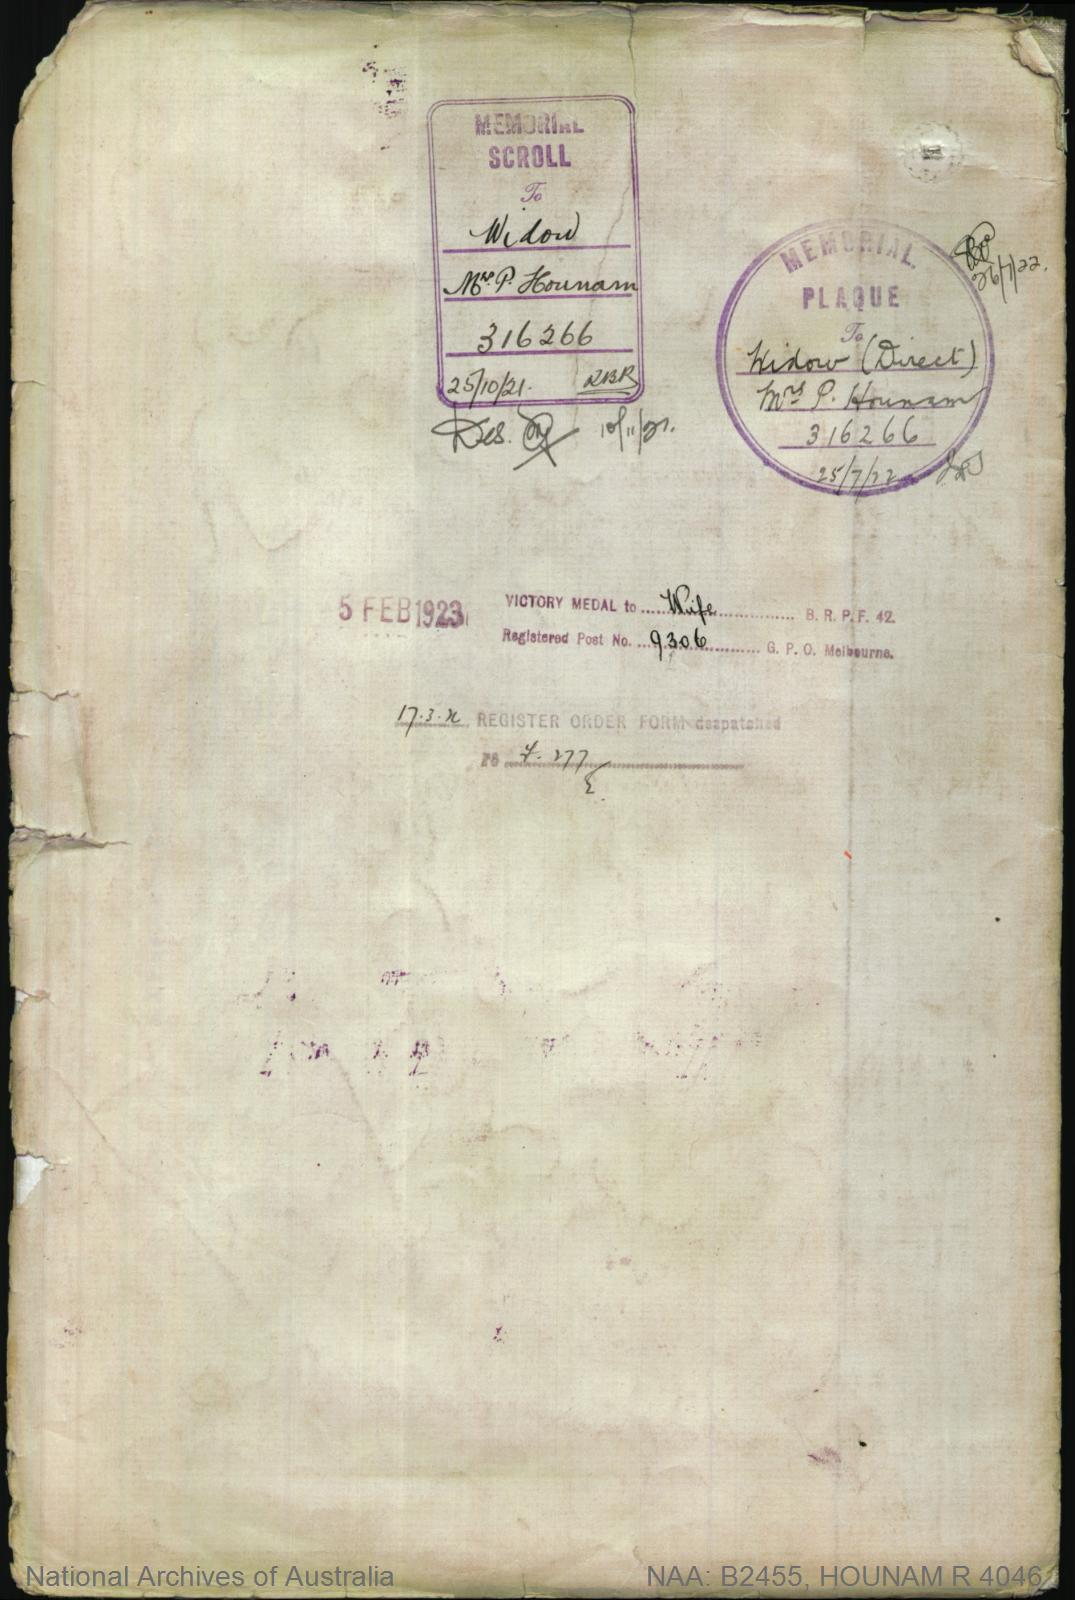 HOUNAM Robert : Service Number - 4046 : Place of Birth - Rothbury England : Place of Enlistment - Claremont Tas : Next of Kin - (Wife) HOUNAM Phoebe